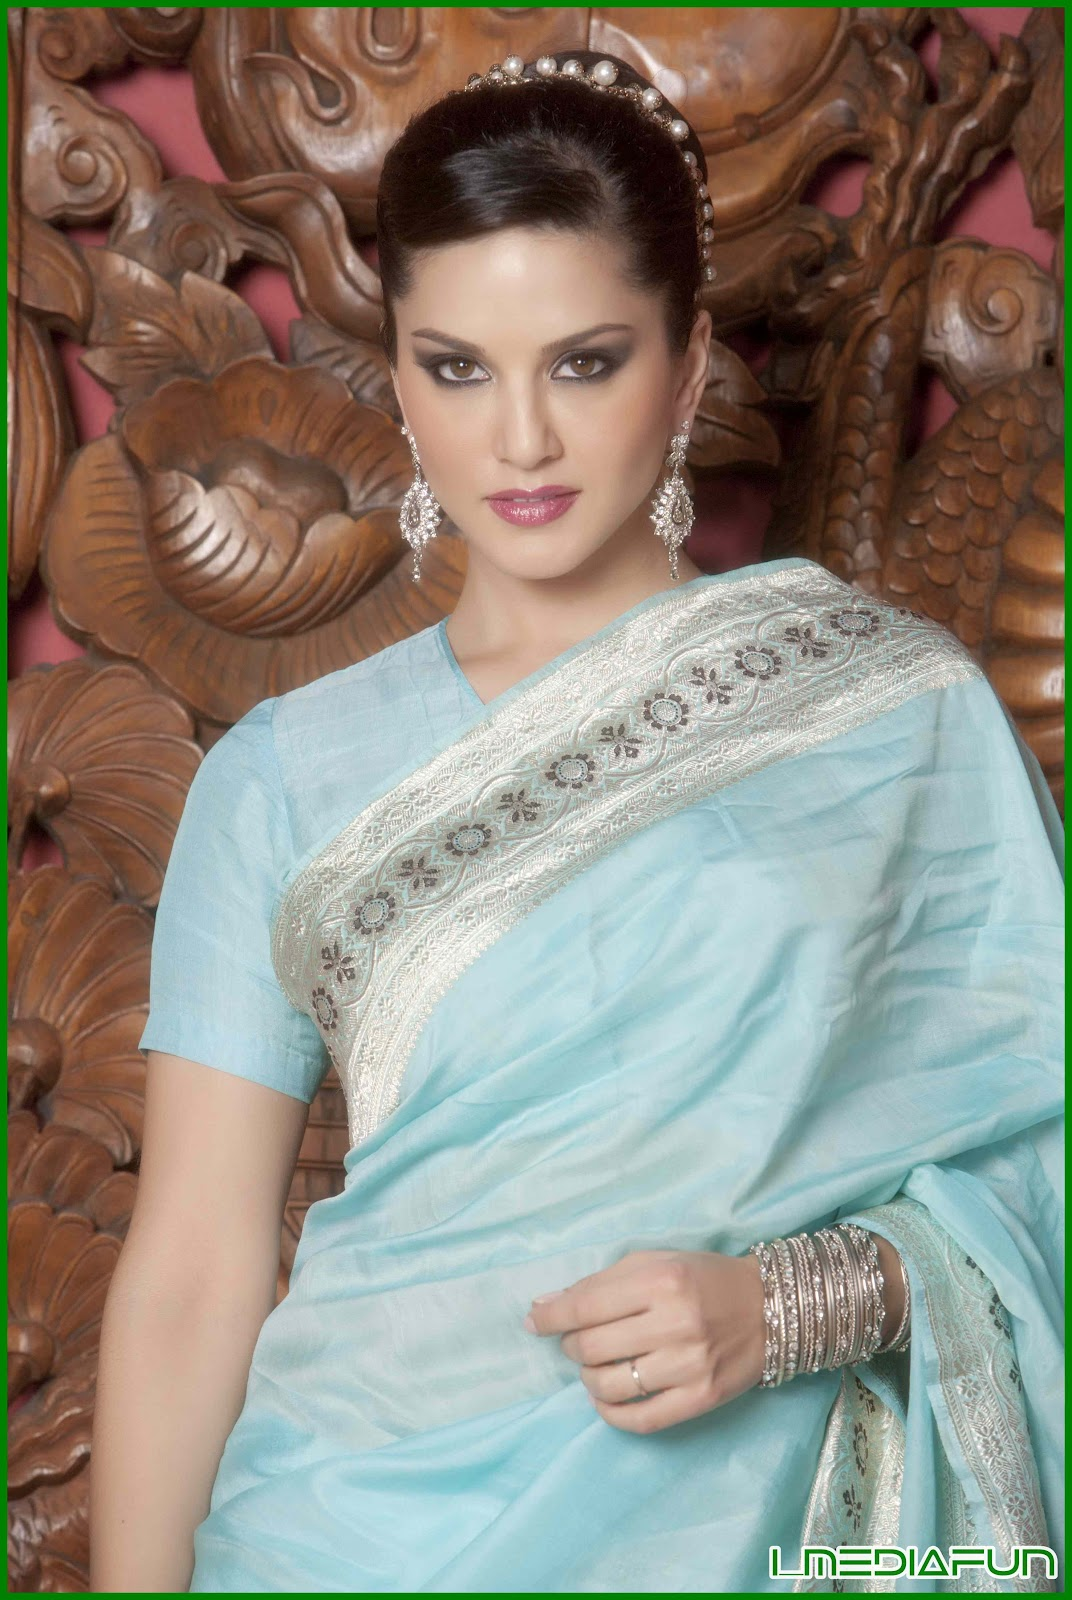 Sunny Leone in Blue Saree - HOT - Sunny Leone's Bollywood photoshoot in Sky Blue Saree